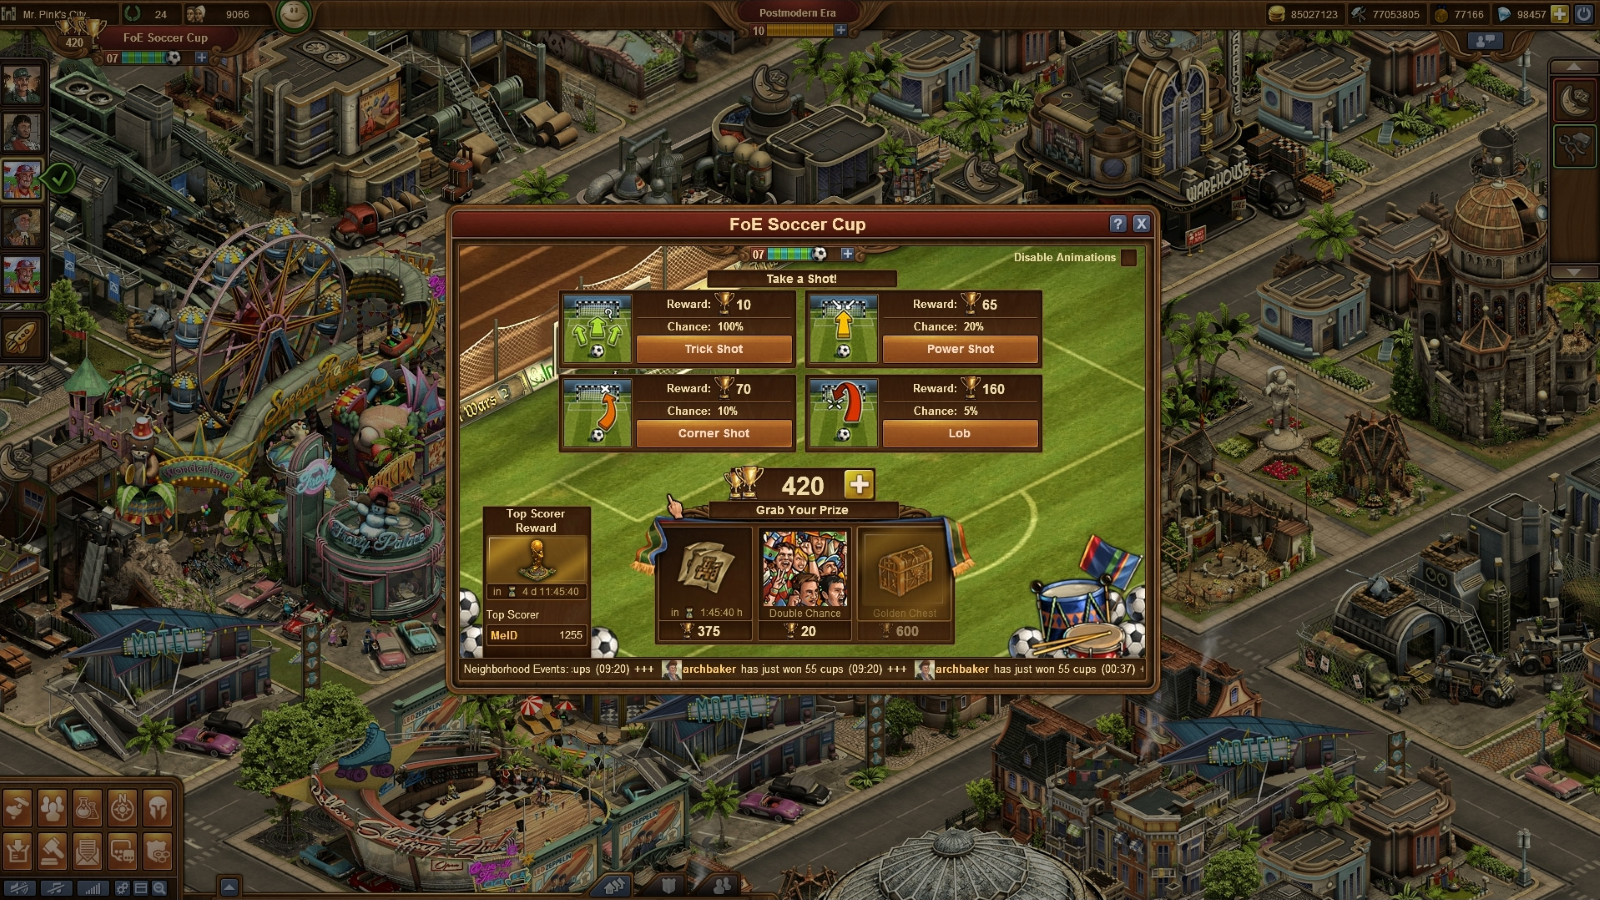 Forge of Empires Soccer Cup Begins